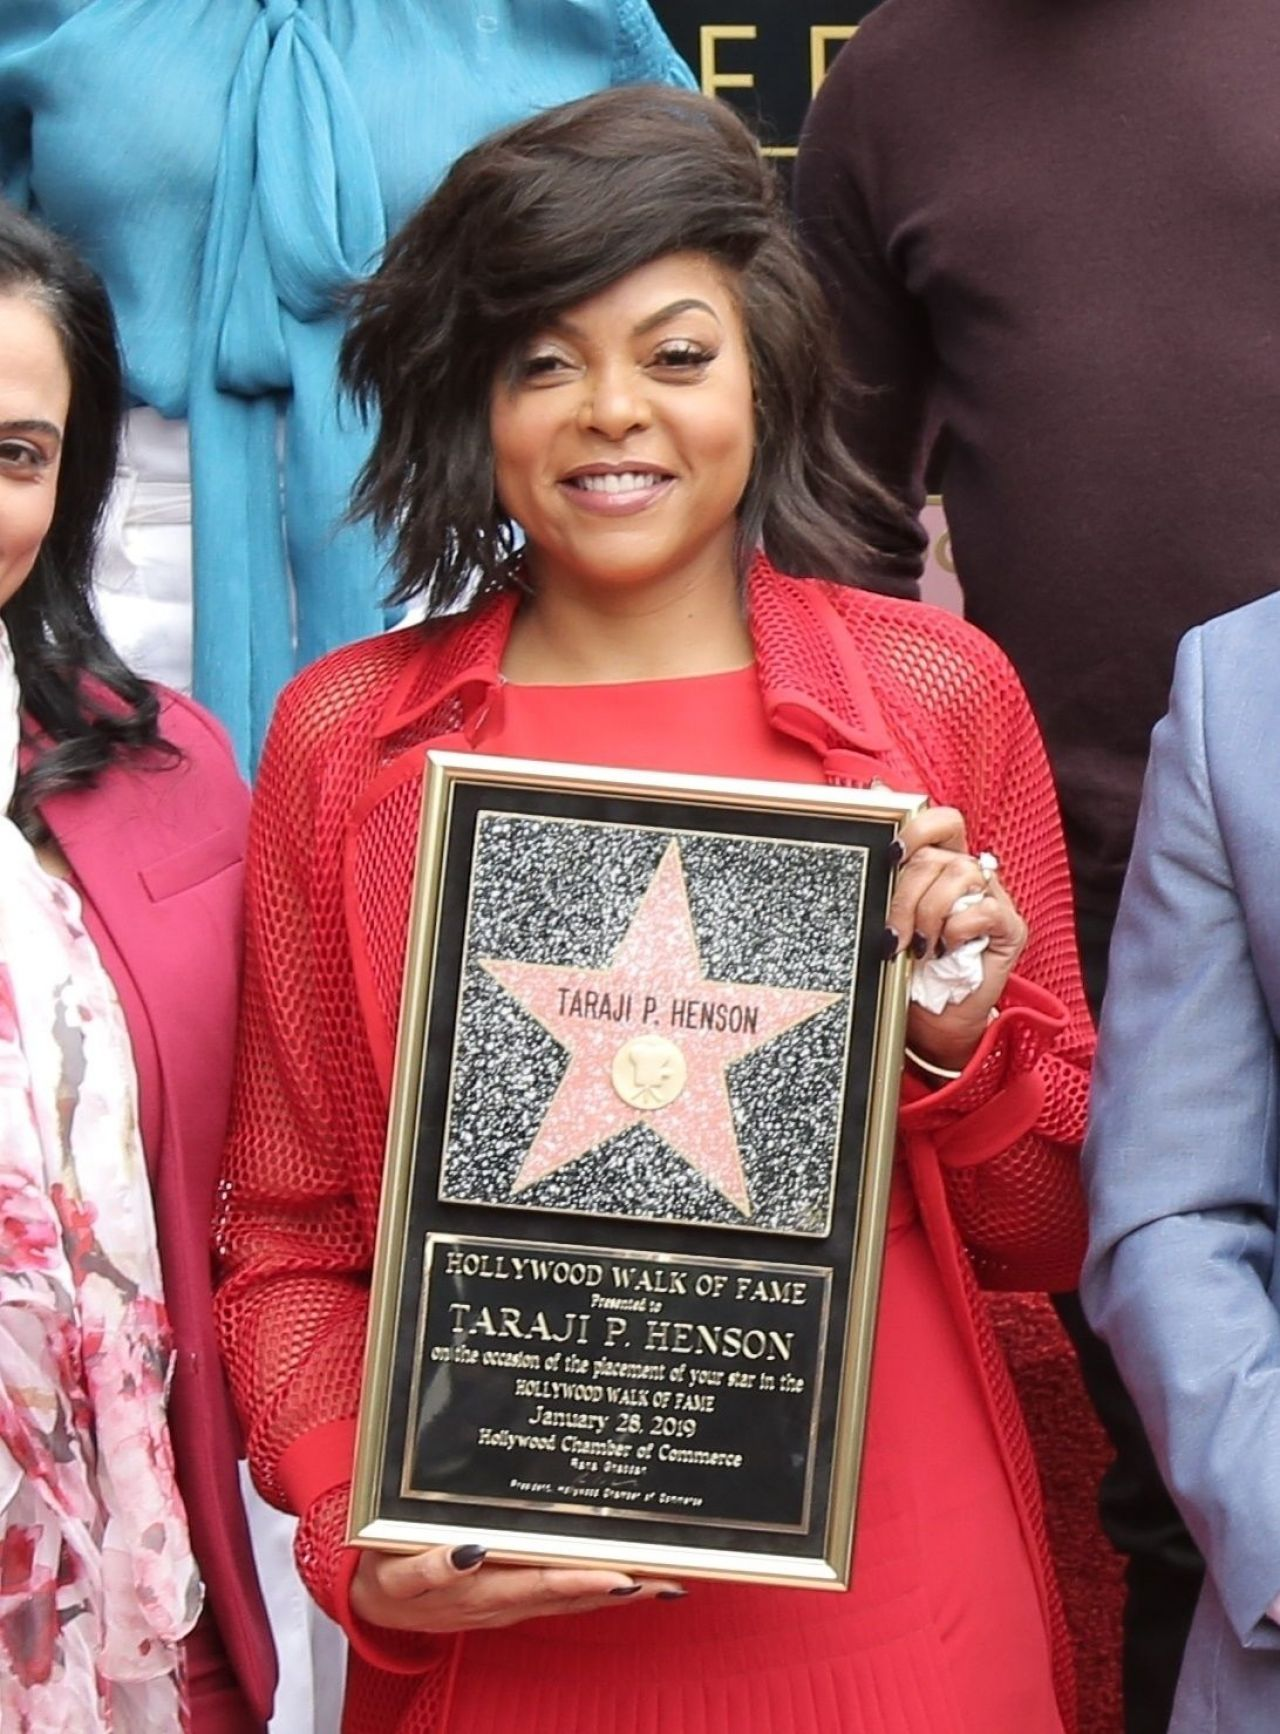 Taraji P Henson Honored With Asstar On The Hollywood Walk Of Fame In Hollywood 01 28 2019